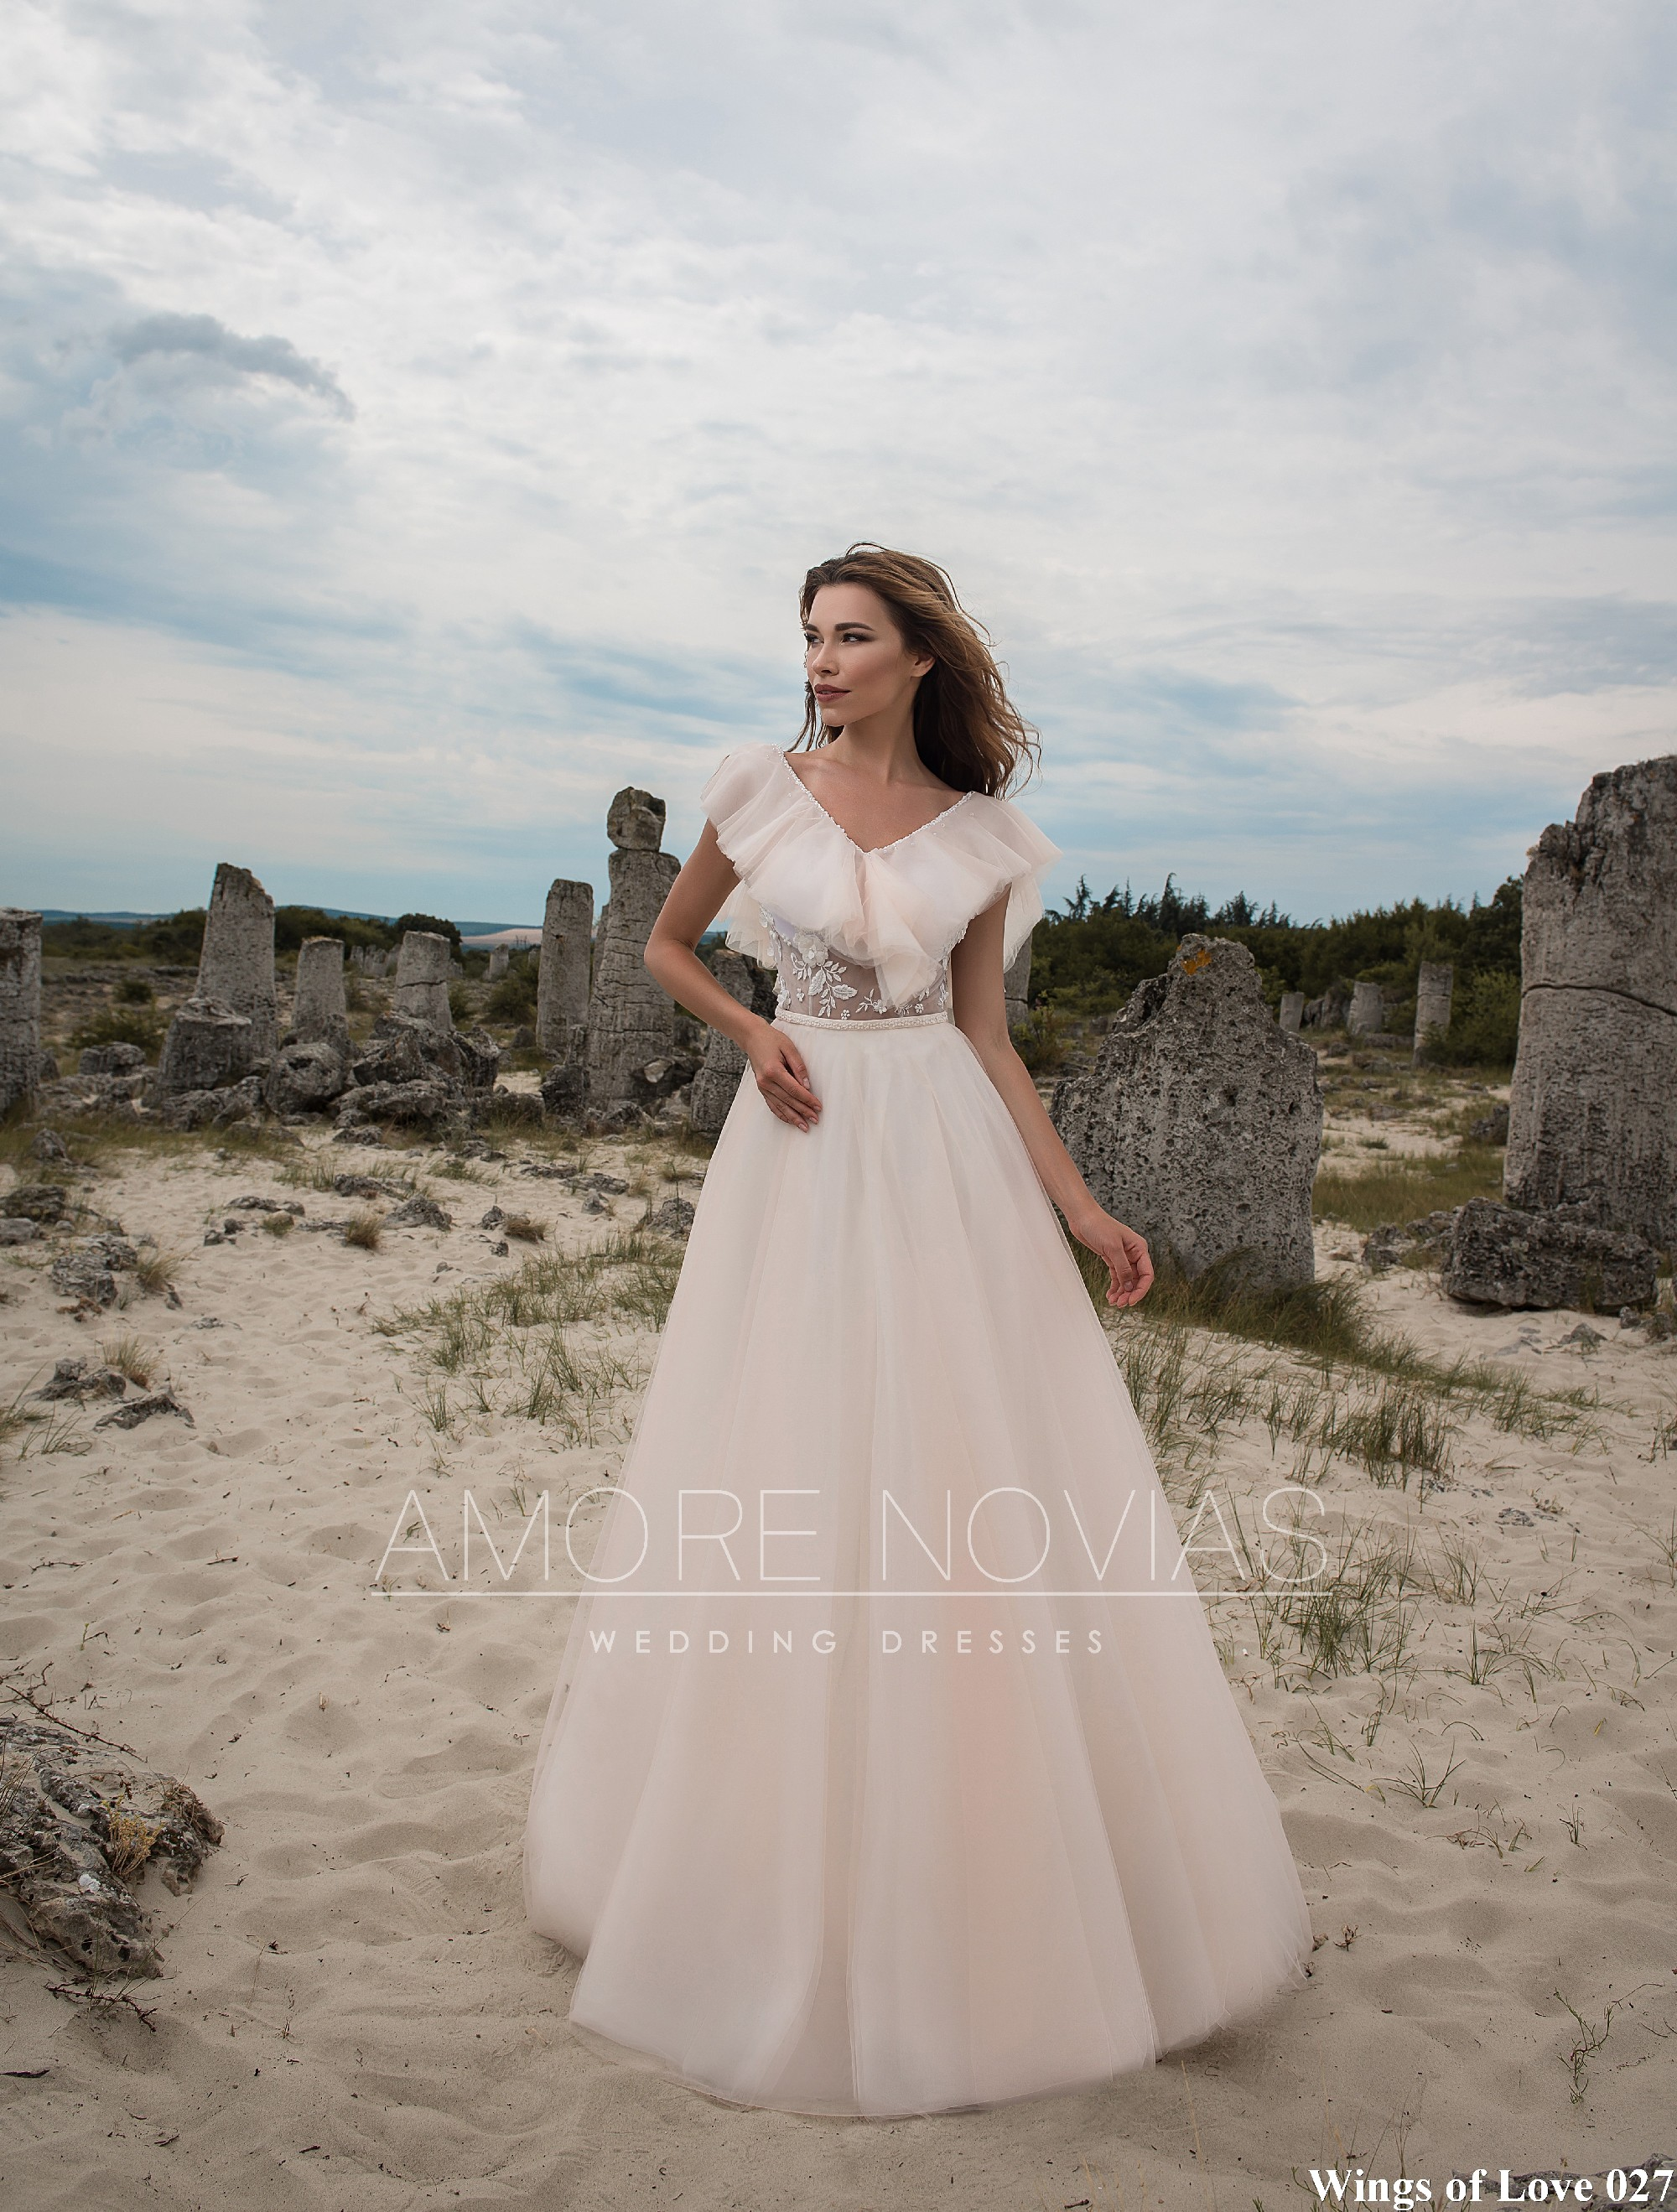 http://amore-novias.com/images/stories/virtuemart/product/lk-027-------(1).jpg